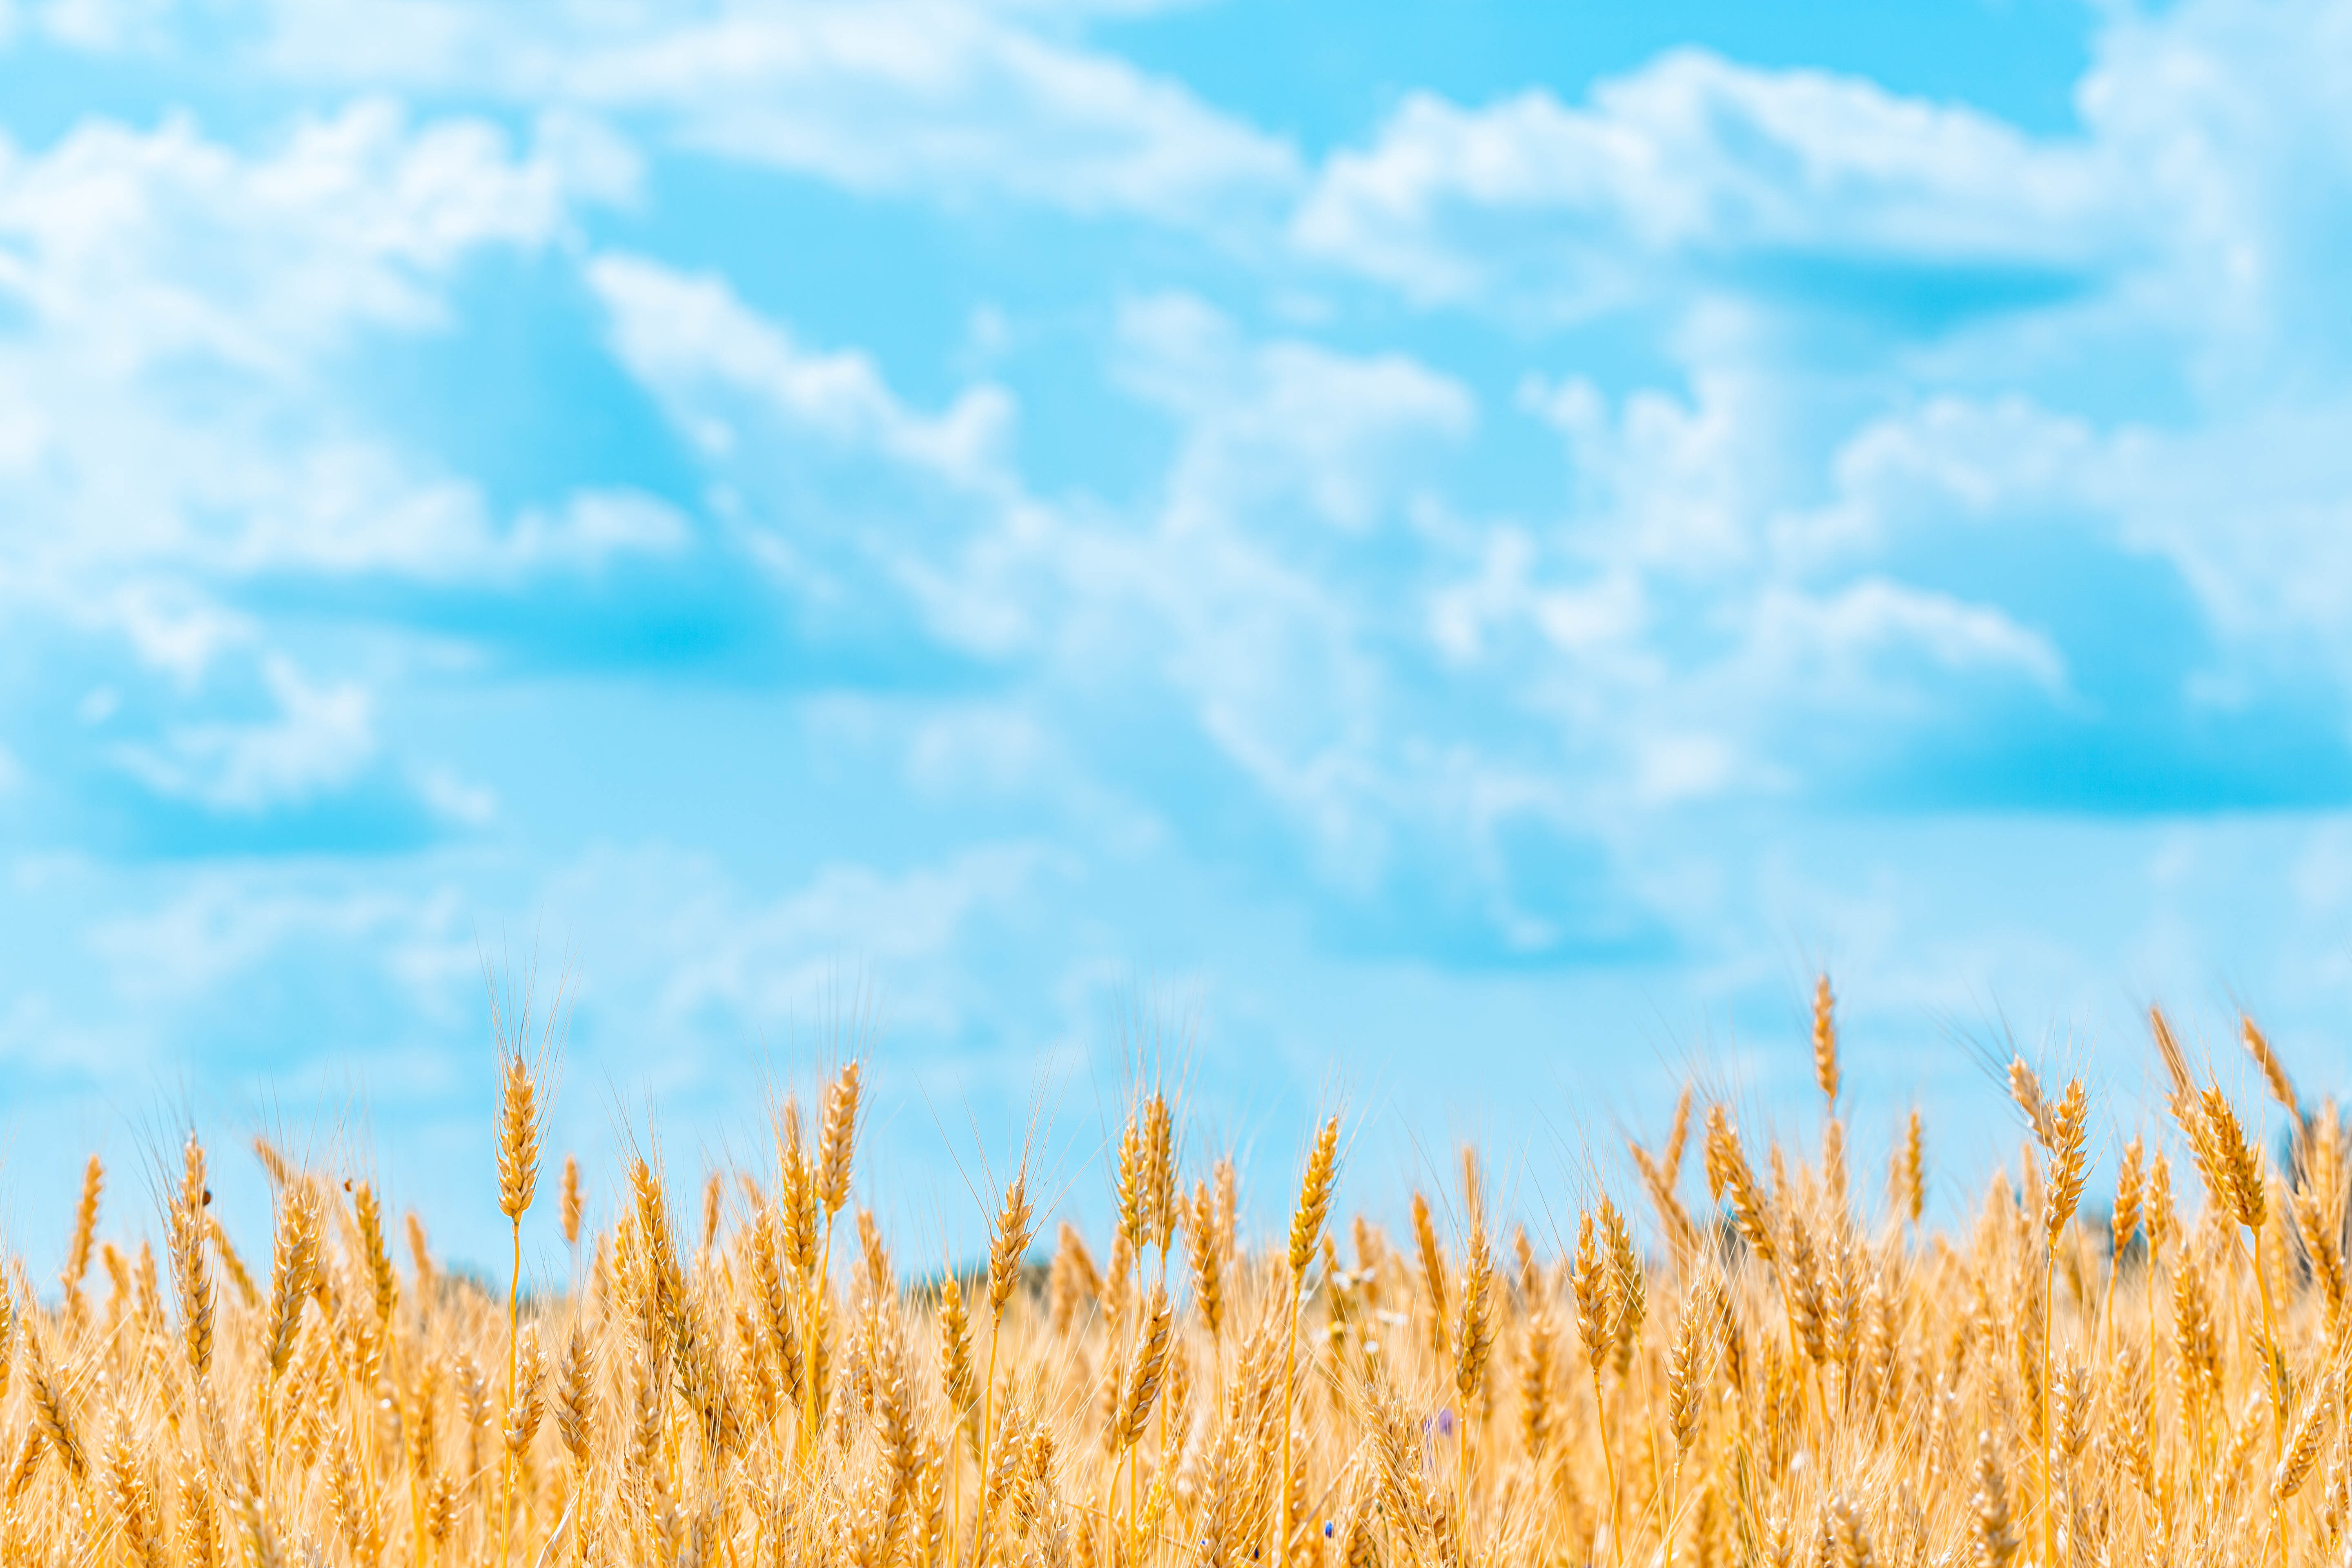 75093 download wallpaper Wheat, Nature, Sky, Cones, Clouds, Field, Spikelets screensavers and pictures for free